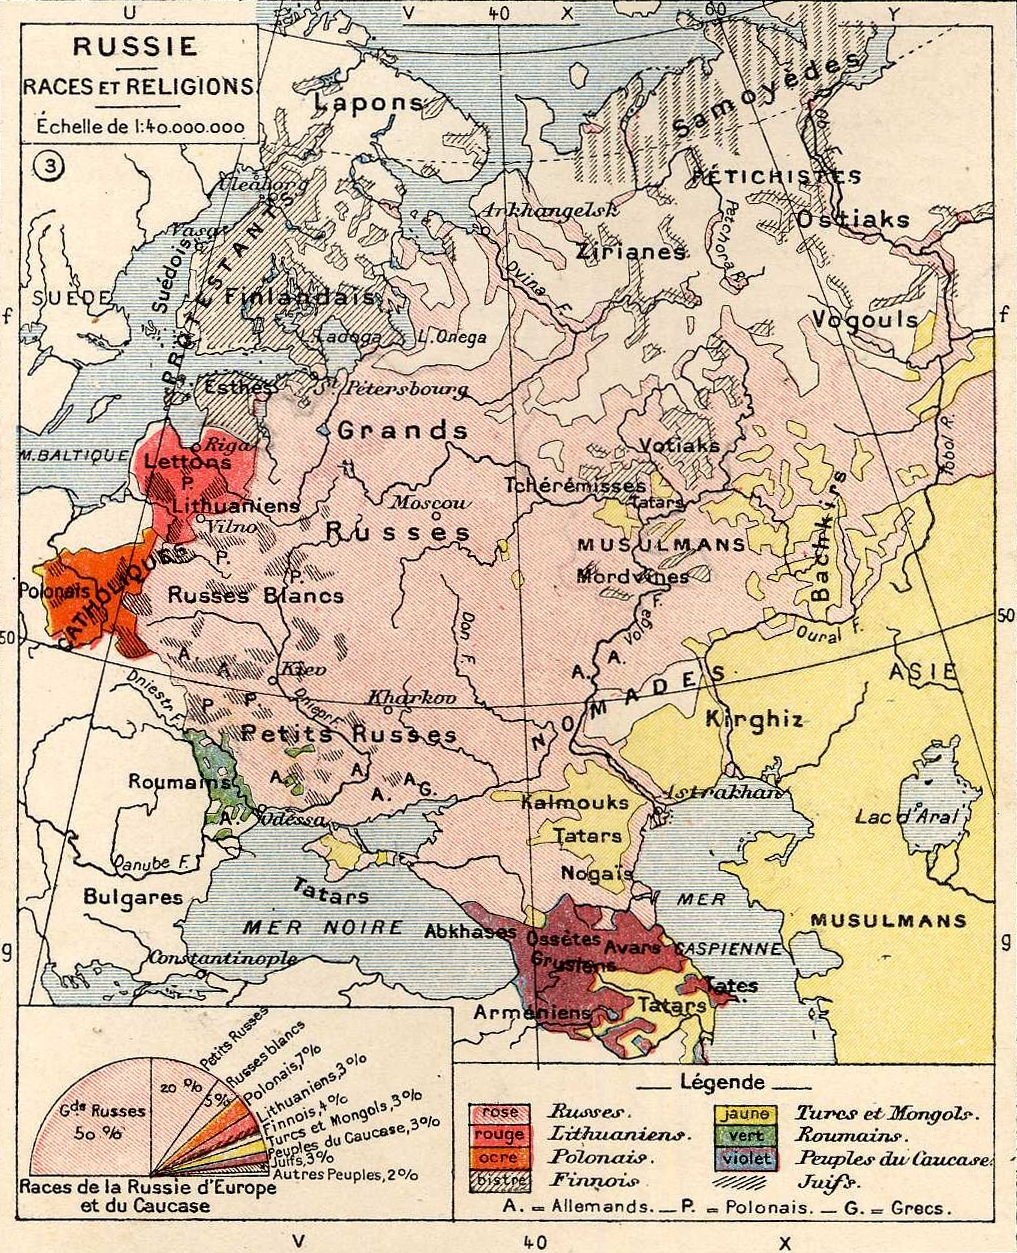 european russia 1898 races and religions map